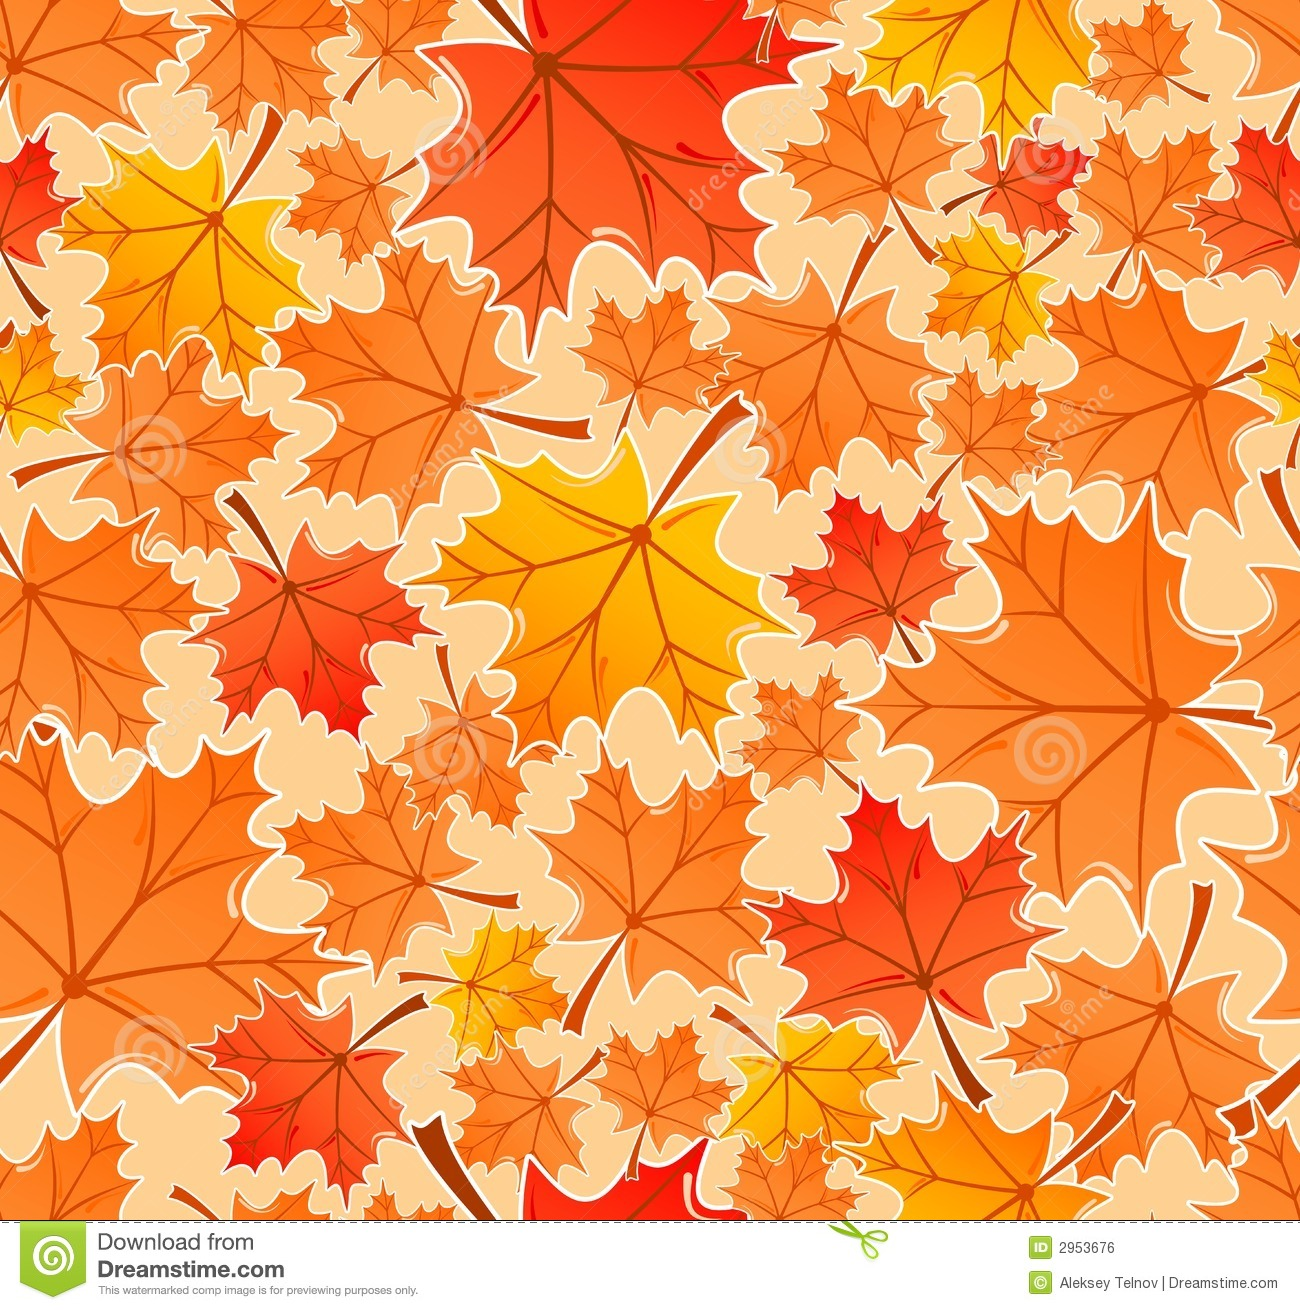 Falling Leaves Wallpaper Screensavers Autumn Leaves Seamless Pattern Royalty Free Stock Image